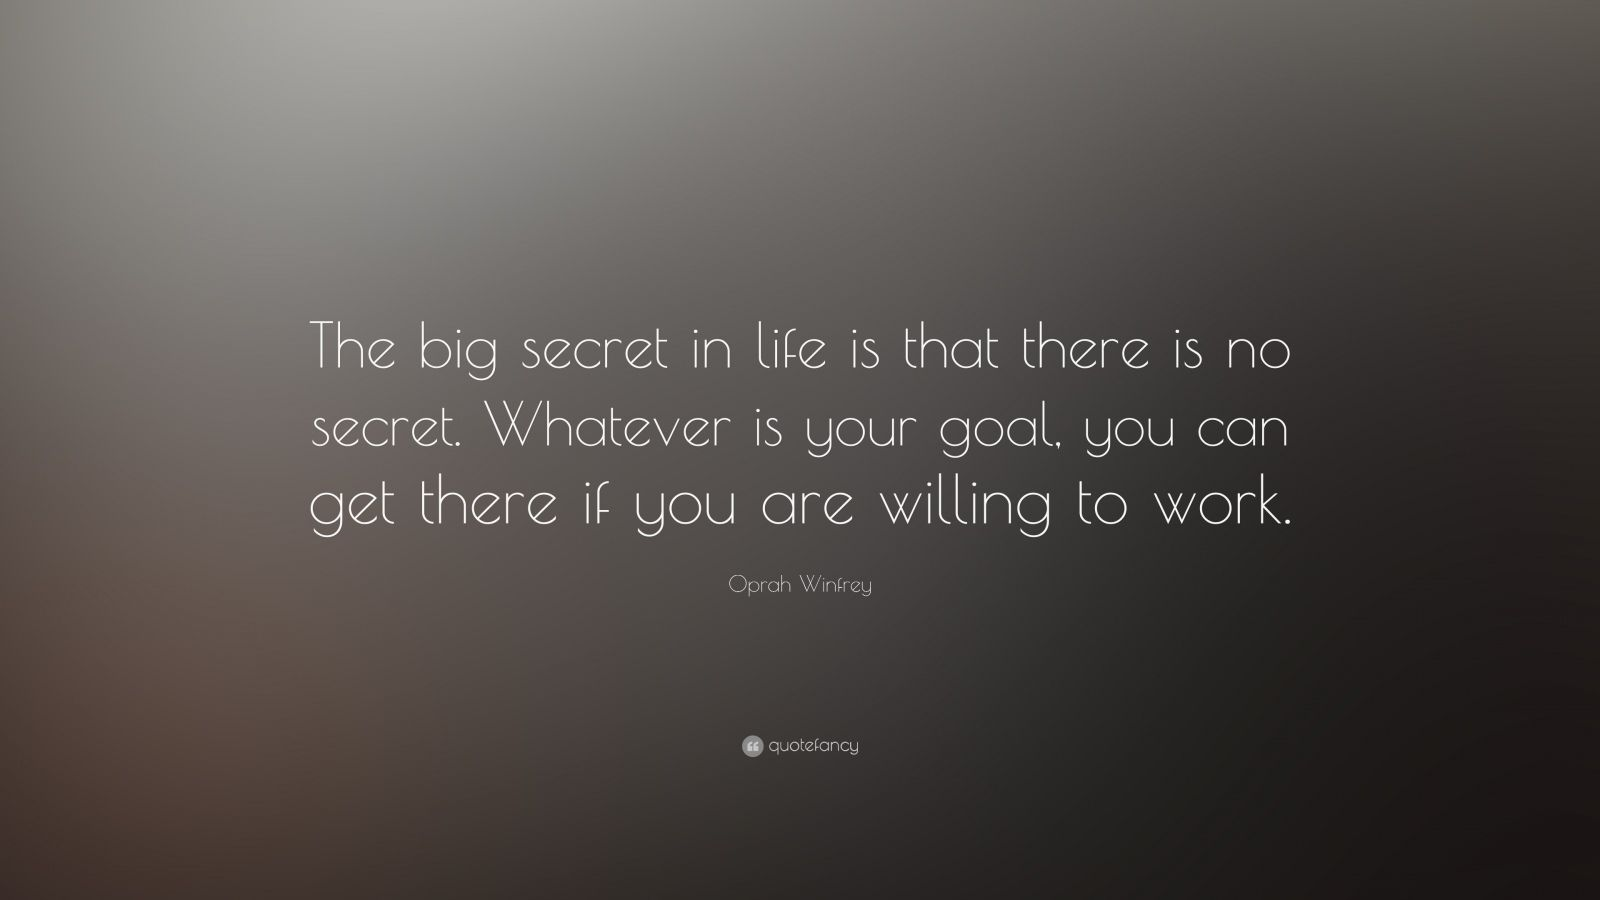 """Oprah Winfrey Quote: """"The big secret in life is that there is no secret. Whatever is your goal, you can get there if you are willing to work."""""""